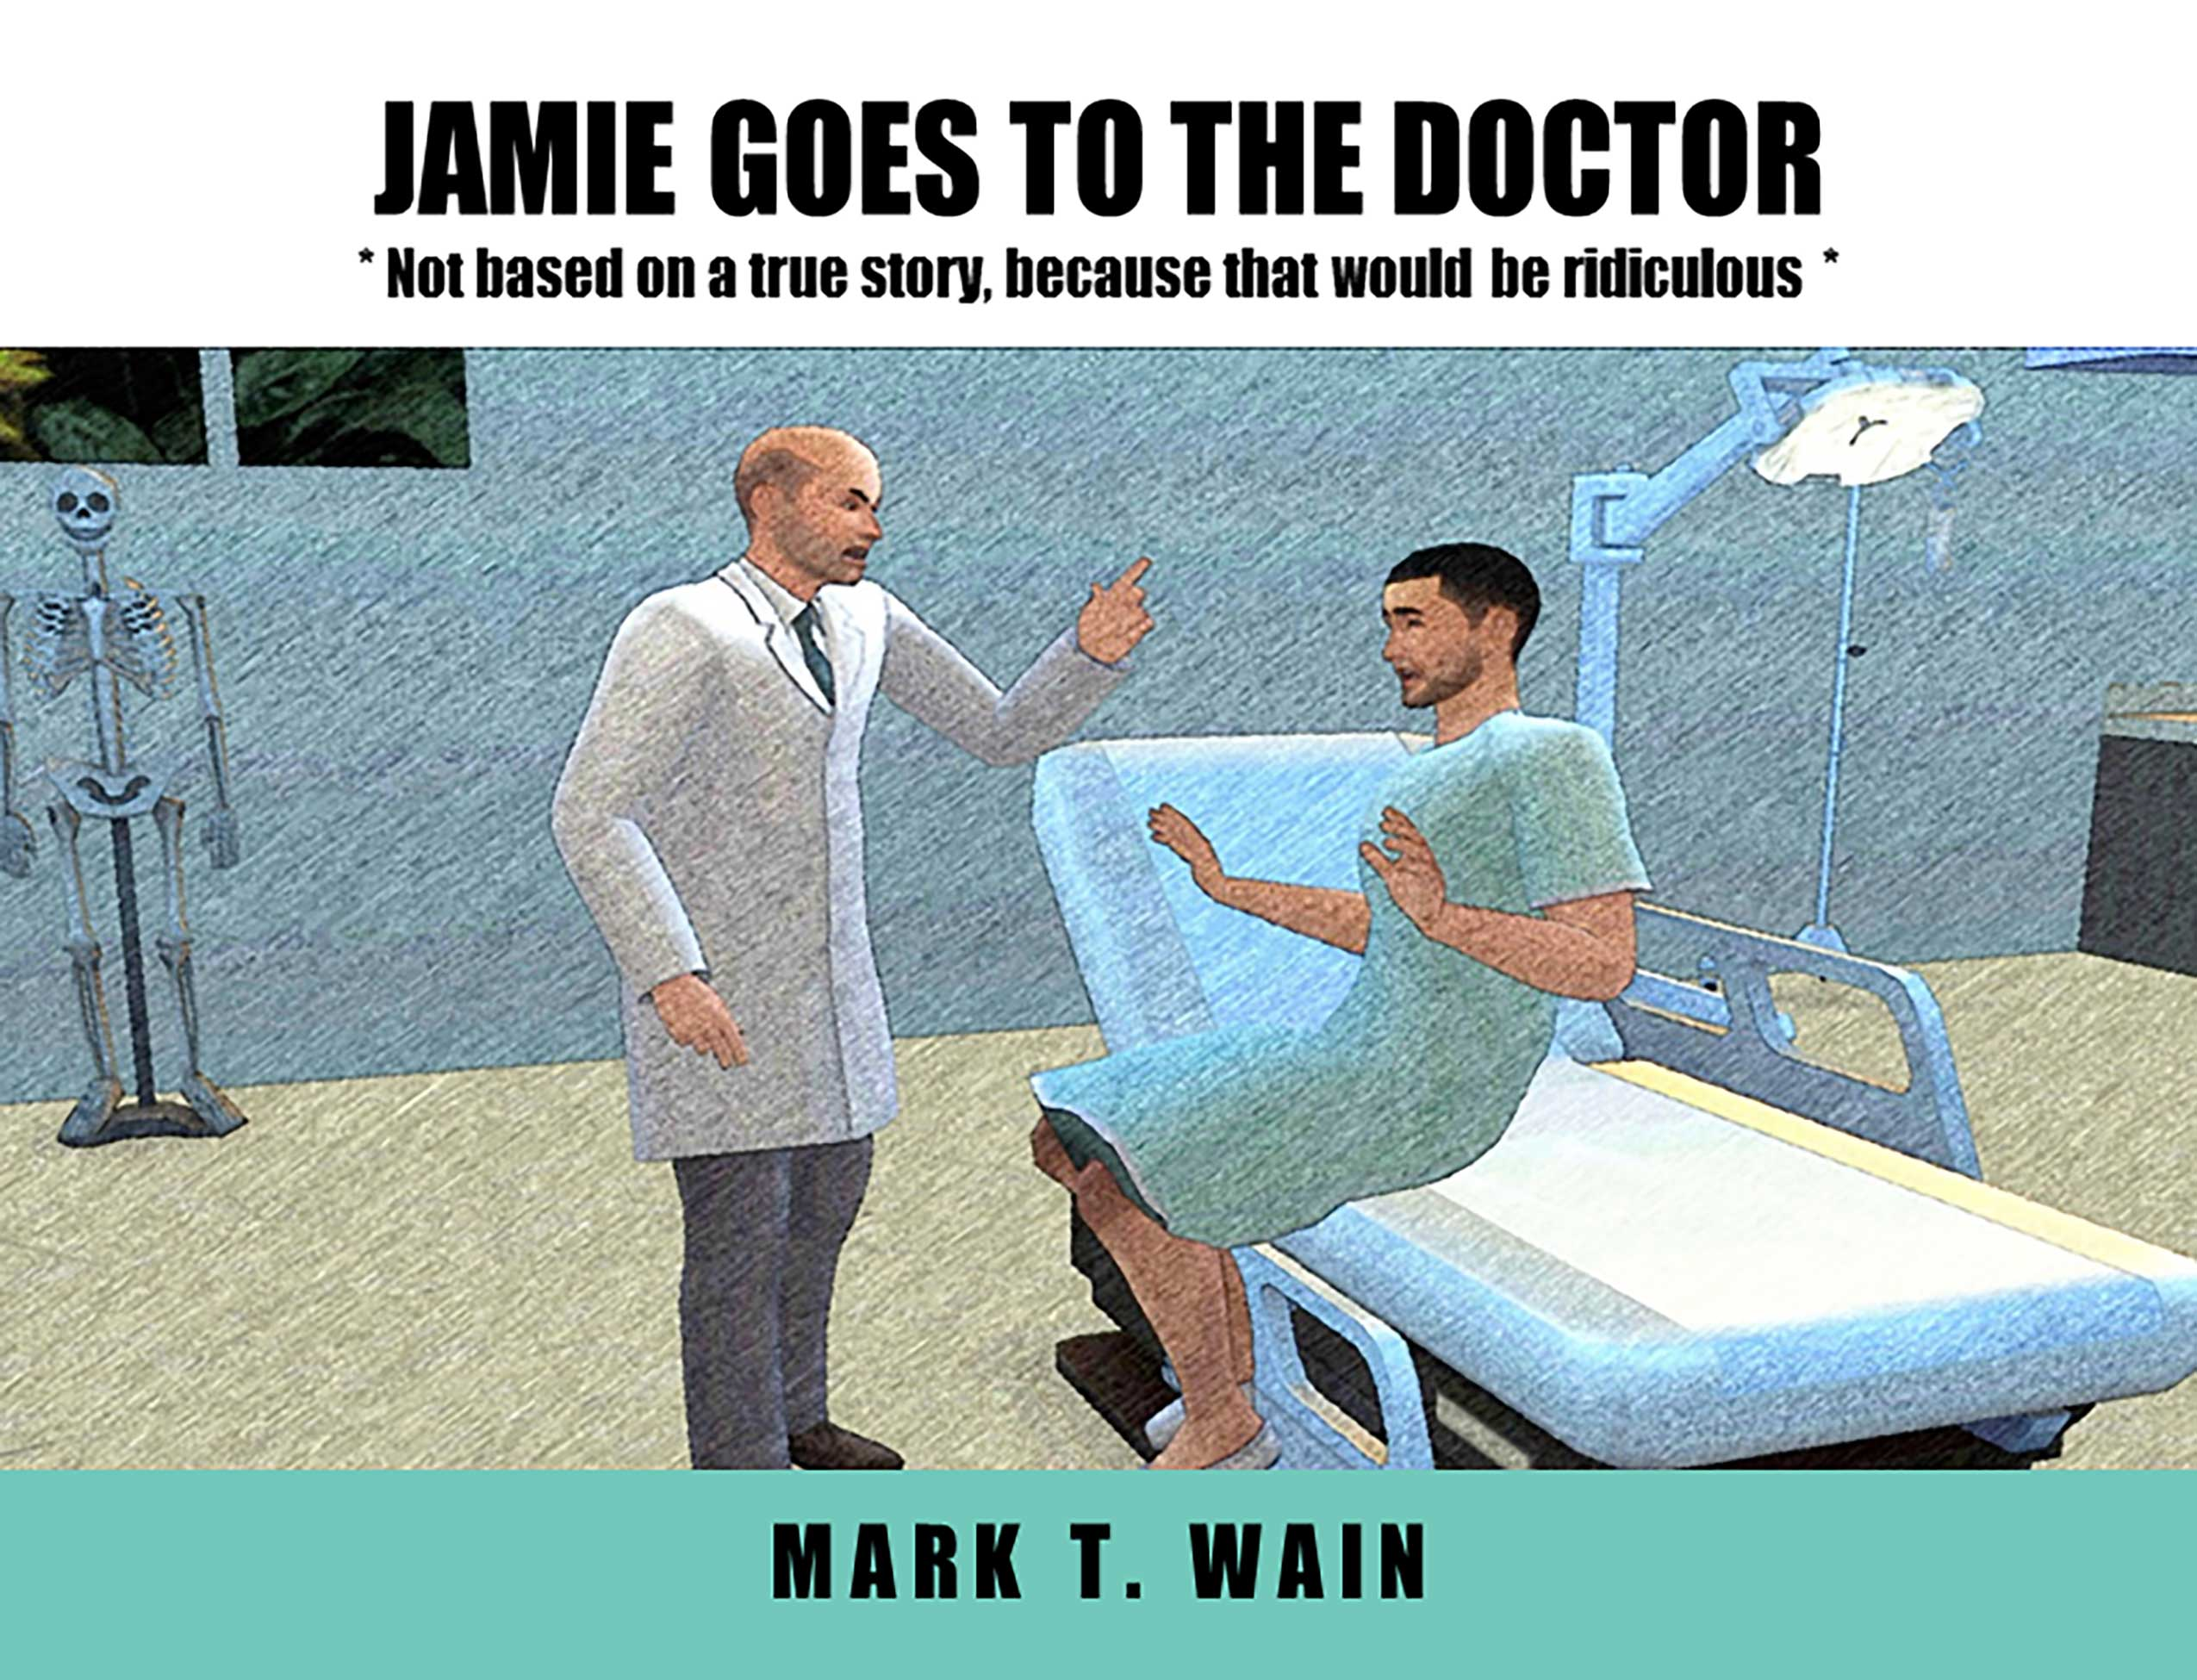 Jamie receives some bad medicine.